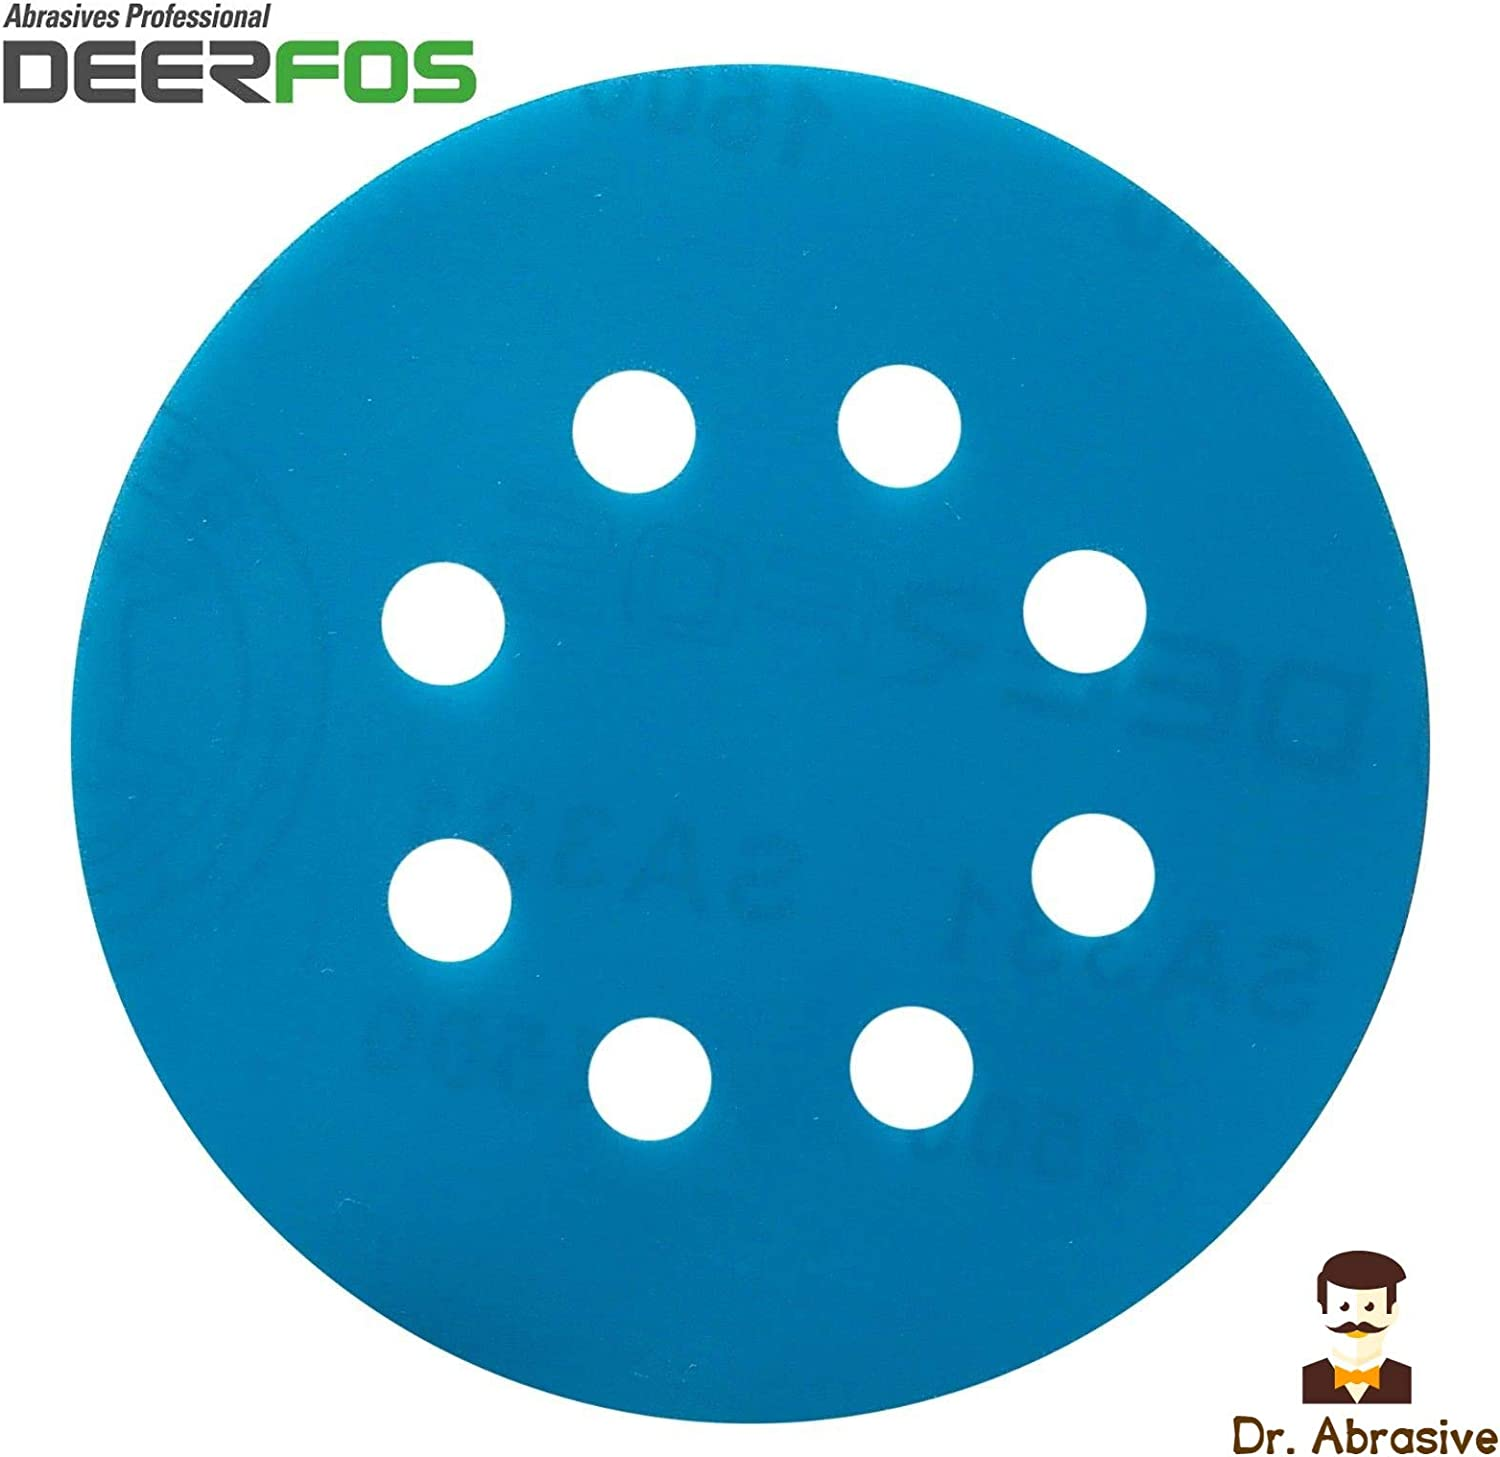 50 Pack Made of Aluminum Oxide and Back Film Deerfos Hook and Loop Sanding Discs 5 Inch P1200 Grit No Holes